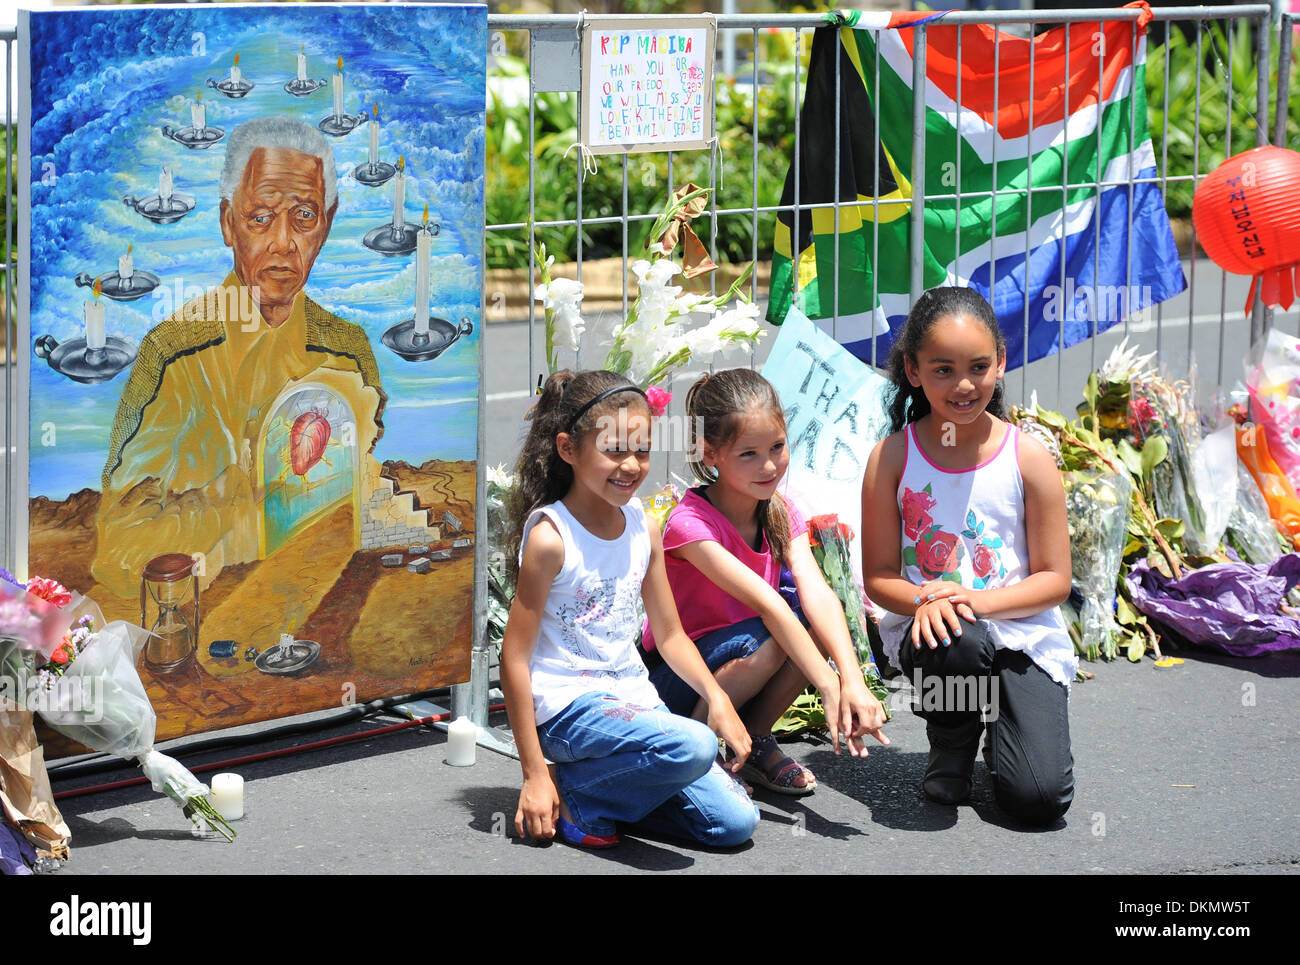 CAPE TOWN, SOUTH AFRICA - Saturday 7 December 2013, young children in front of some of the condolence messages during a time of national mourning the death of the first democratically elected president, Nelson Mandela, in front of the Cape Town City Hall.  Credit:  Roger Sedres/Alamy Live News - Stock Image